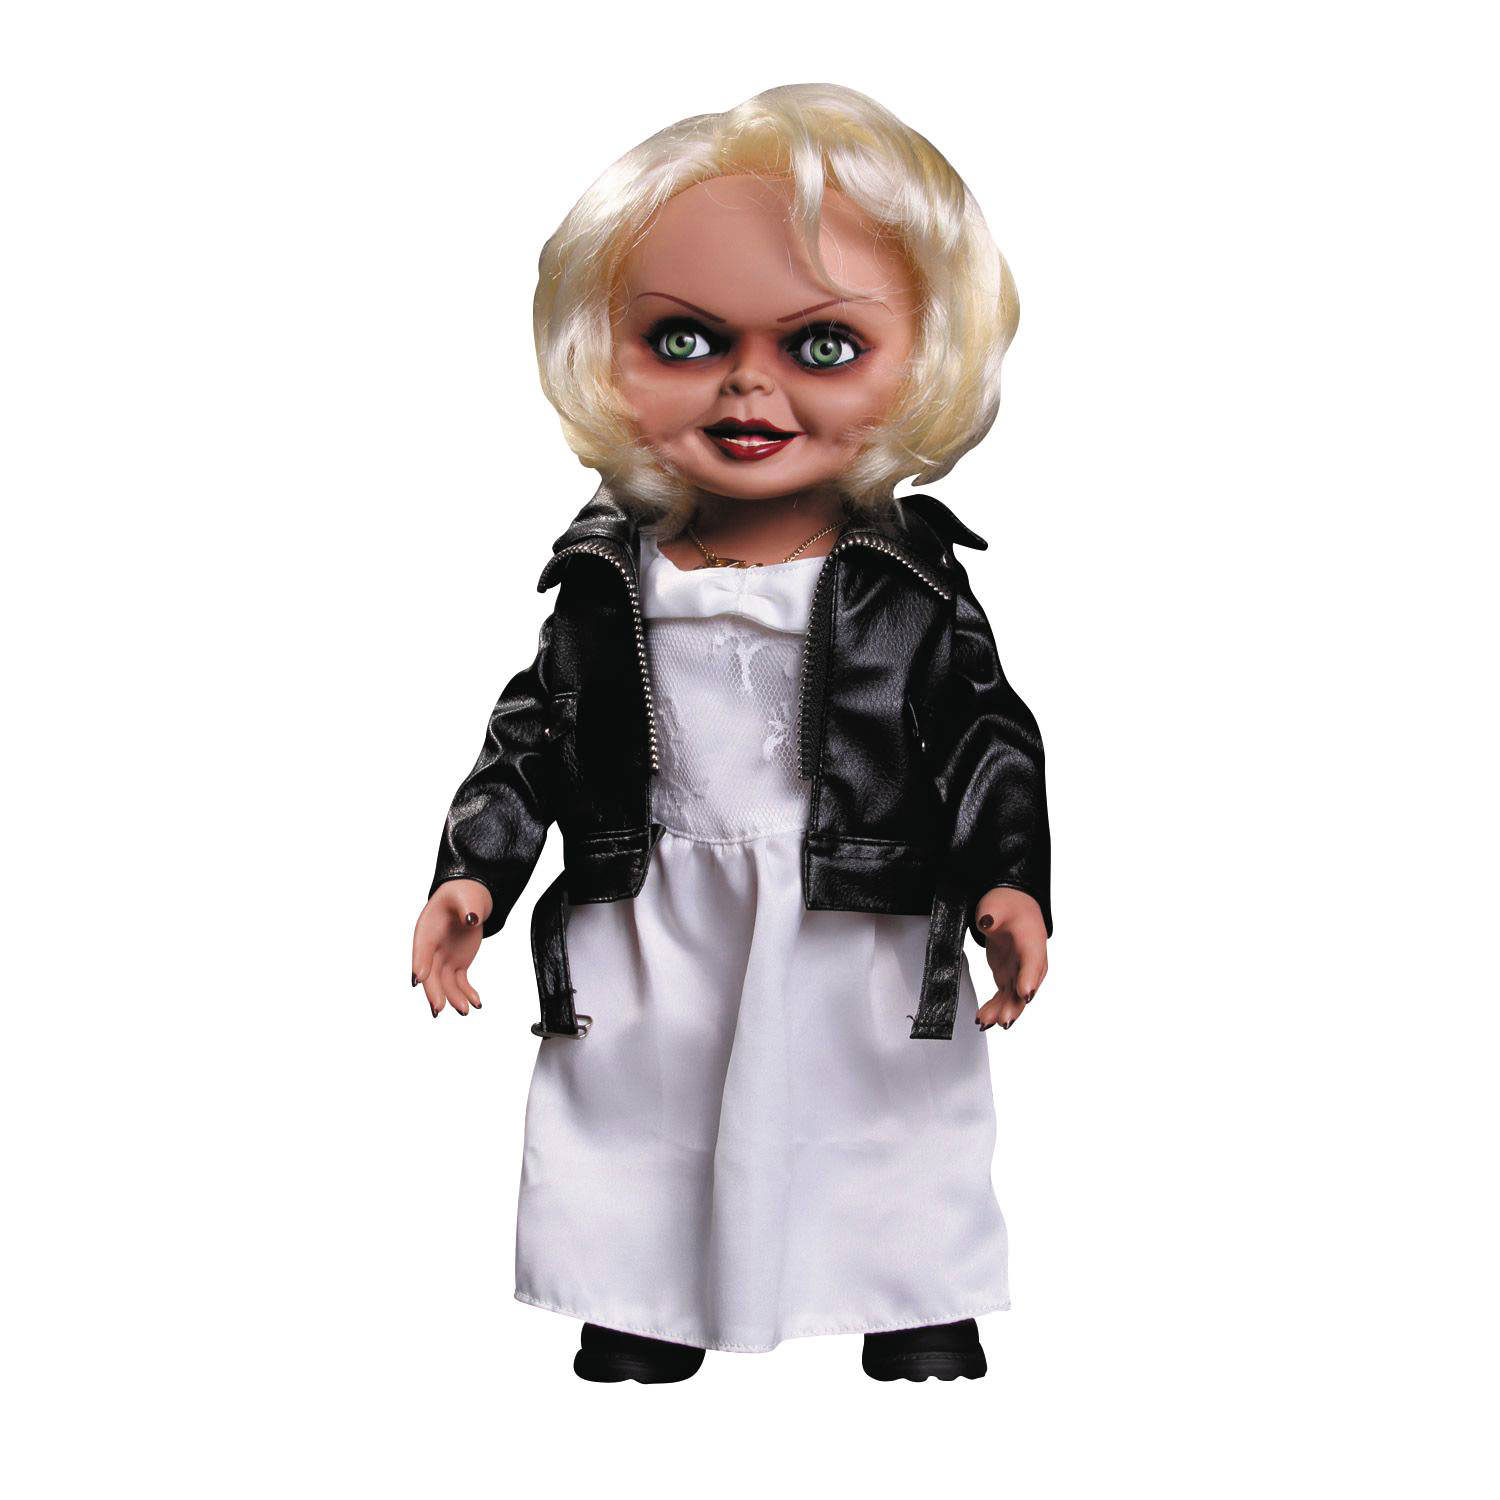 Mezco Bride Of Chucky Tiffany Doll 15 Quot Talking